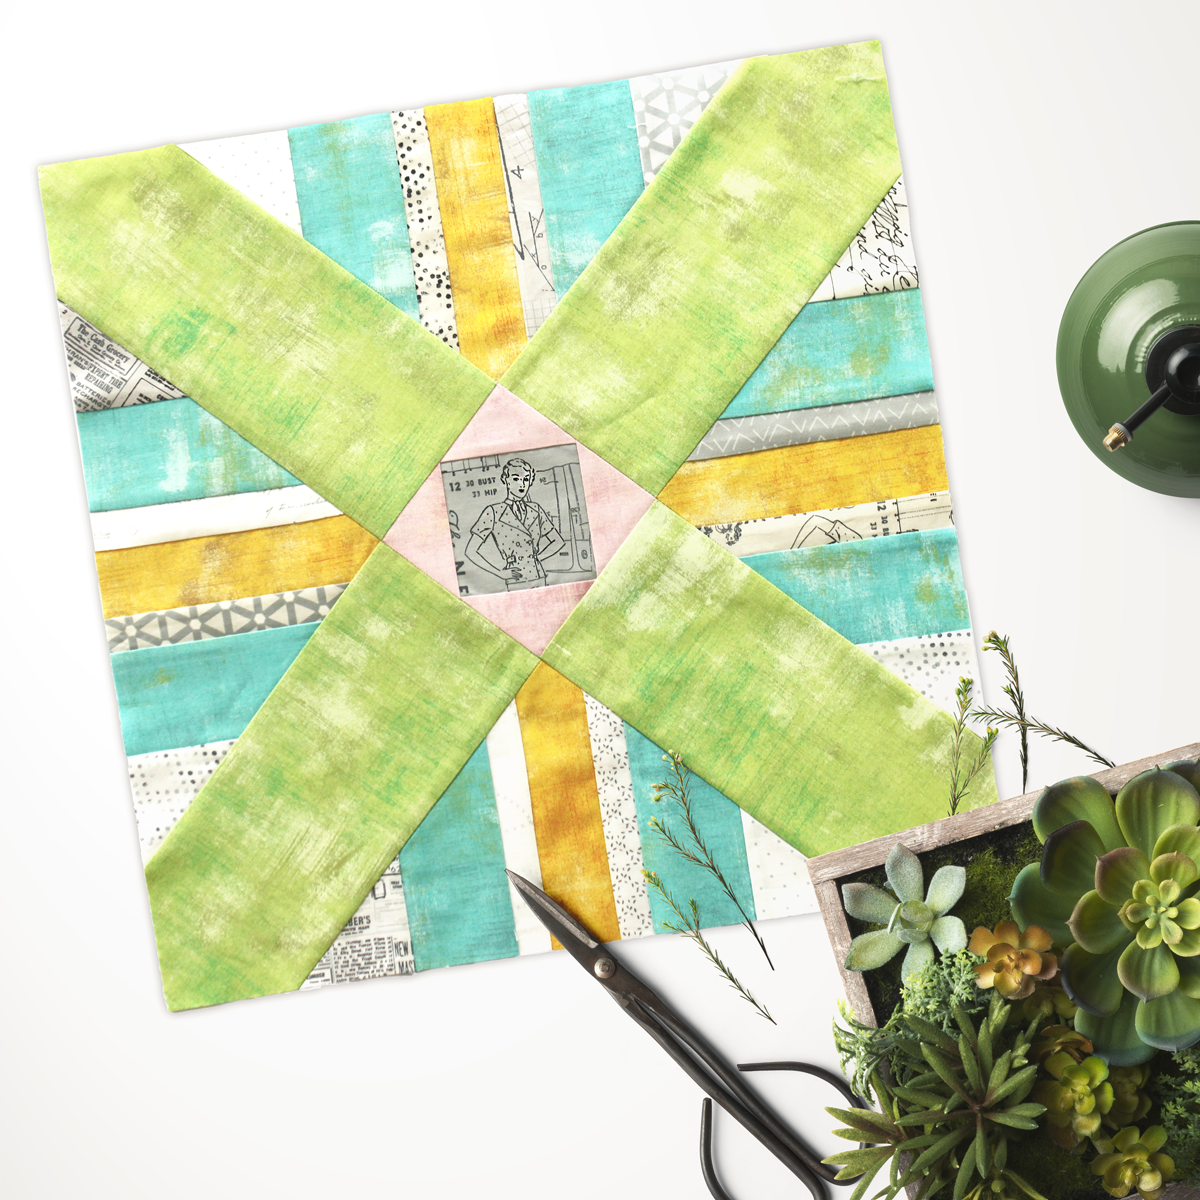 Free quilt along Blockheads 2018, Block 30: Gaudi Fabrics used in the block are from Moda, Basic Grey GRUNGE and Zen Chic PAPER